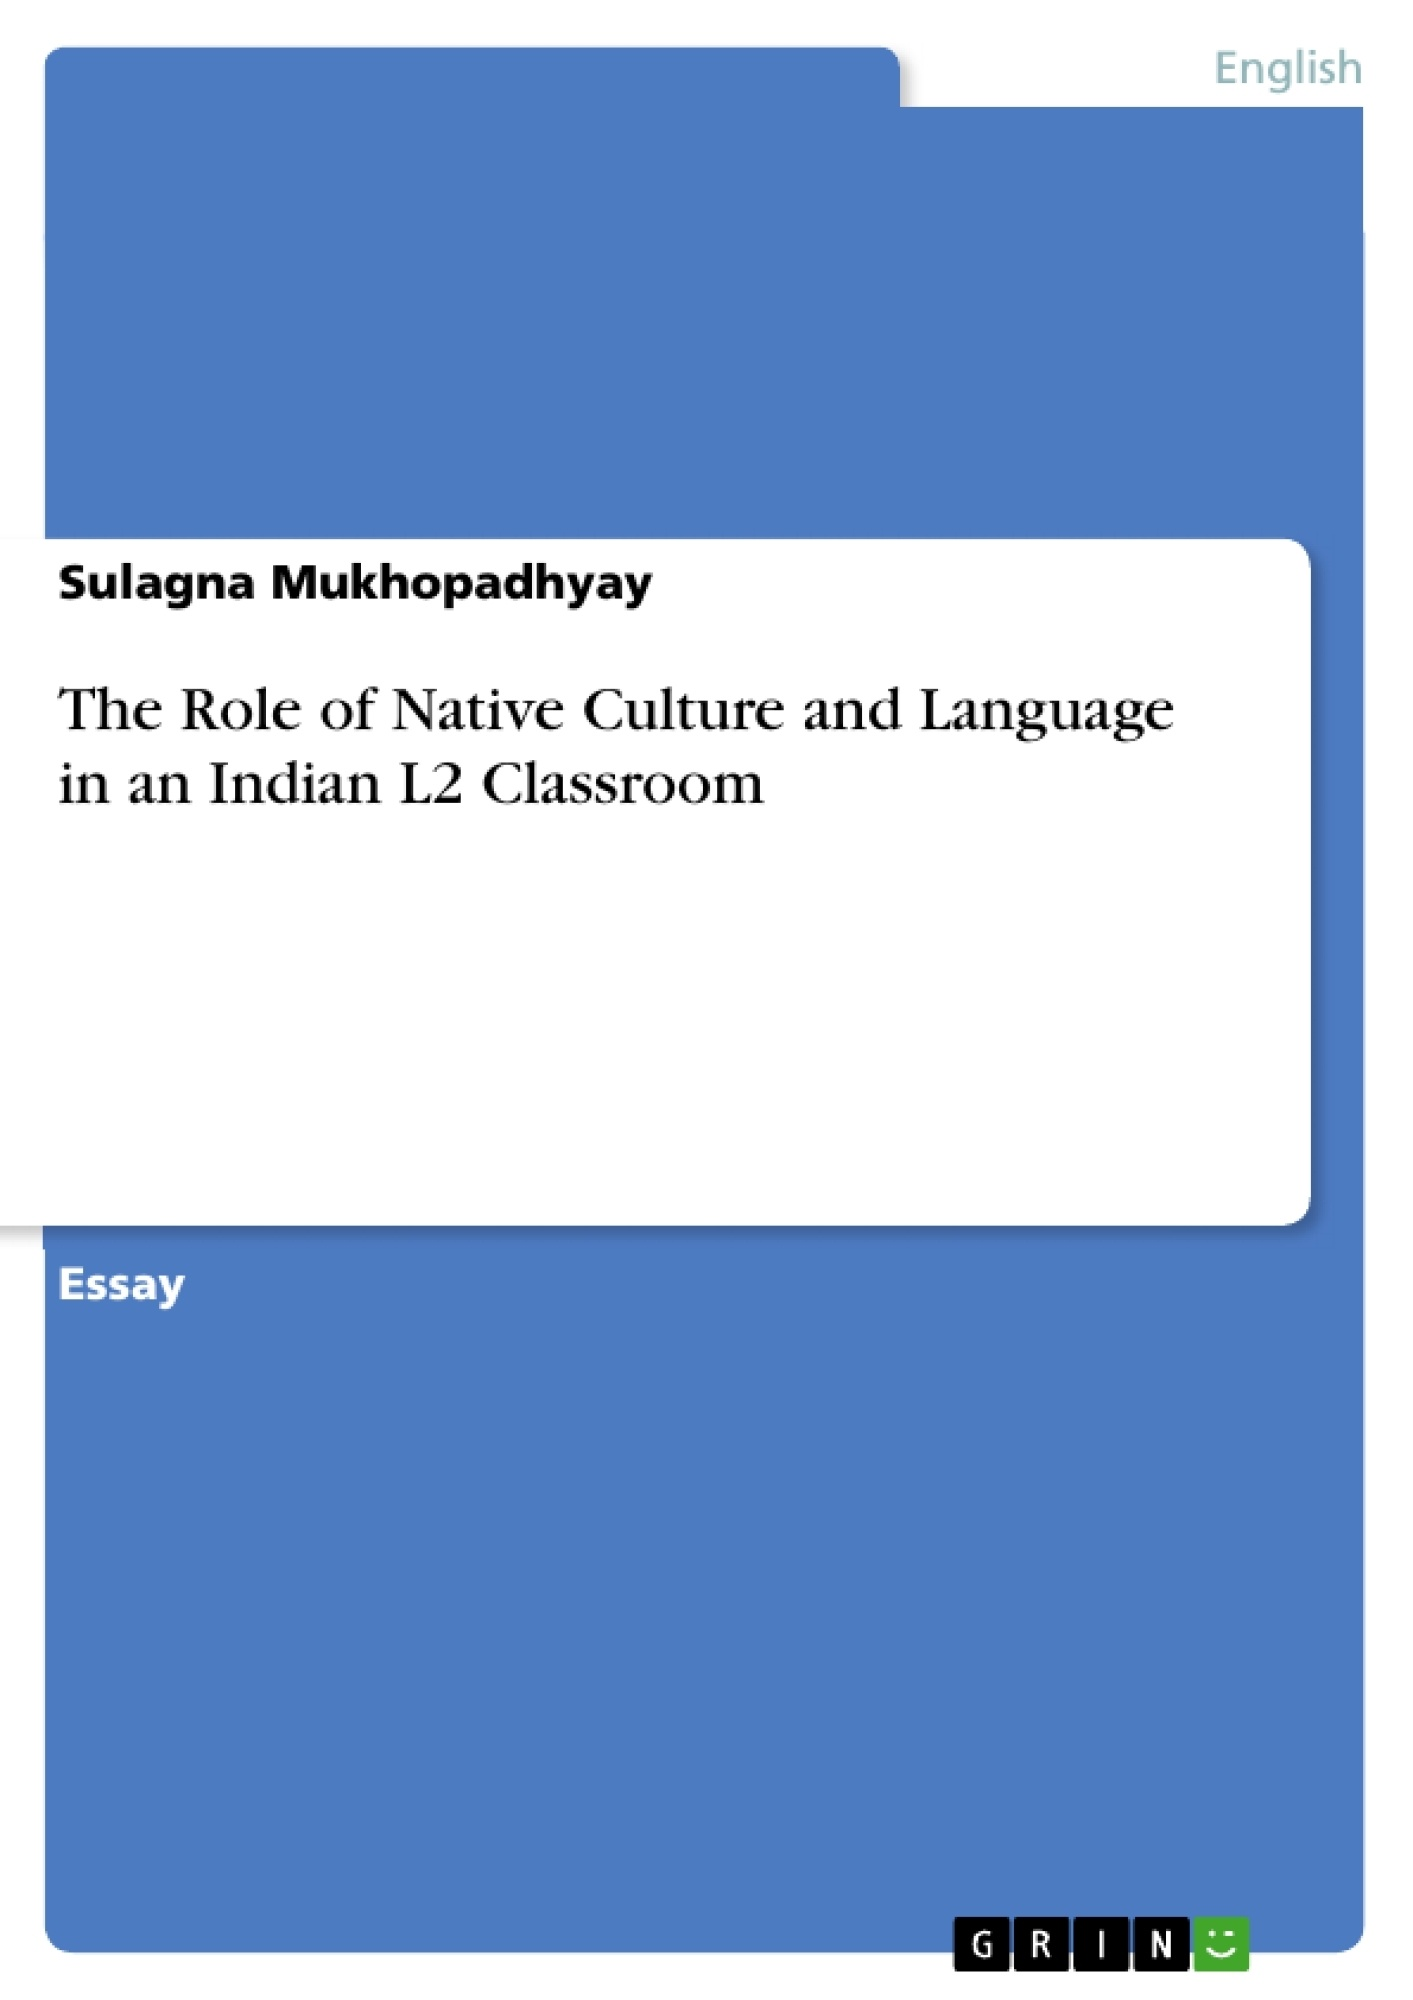 Title: The Role of Native Culture and Language in an Indian L2 Classroom